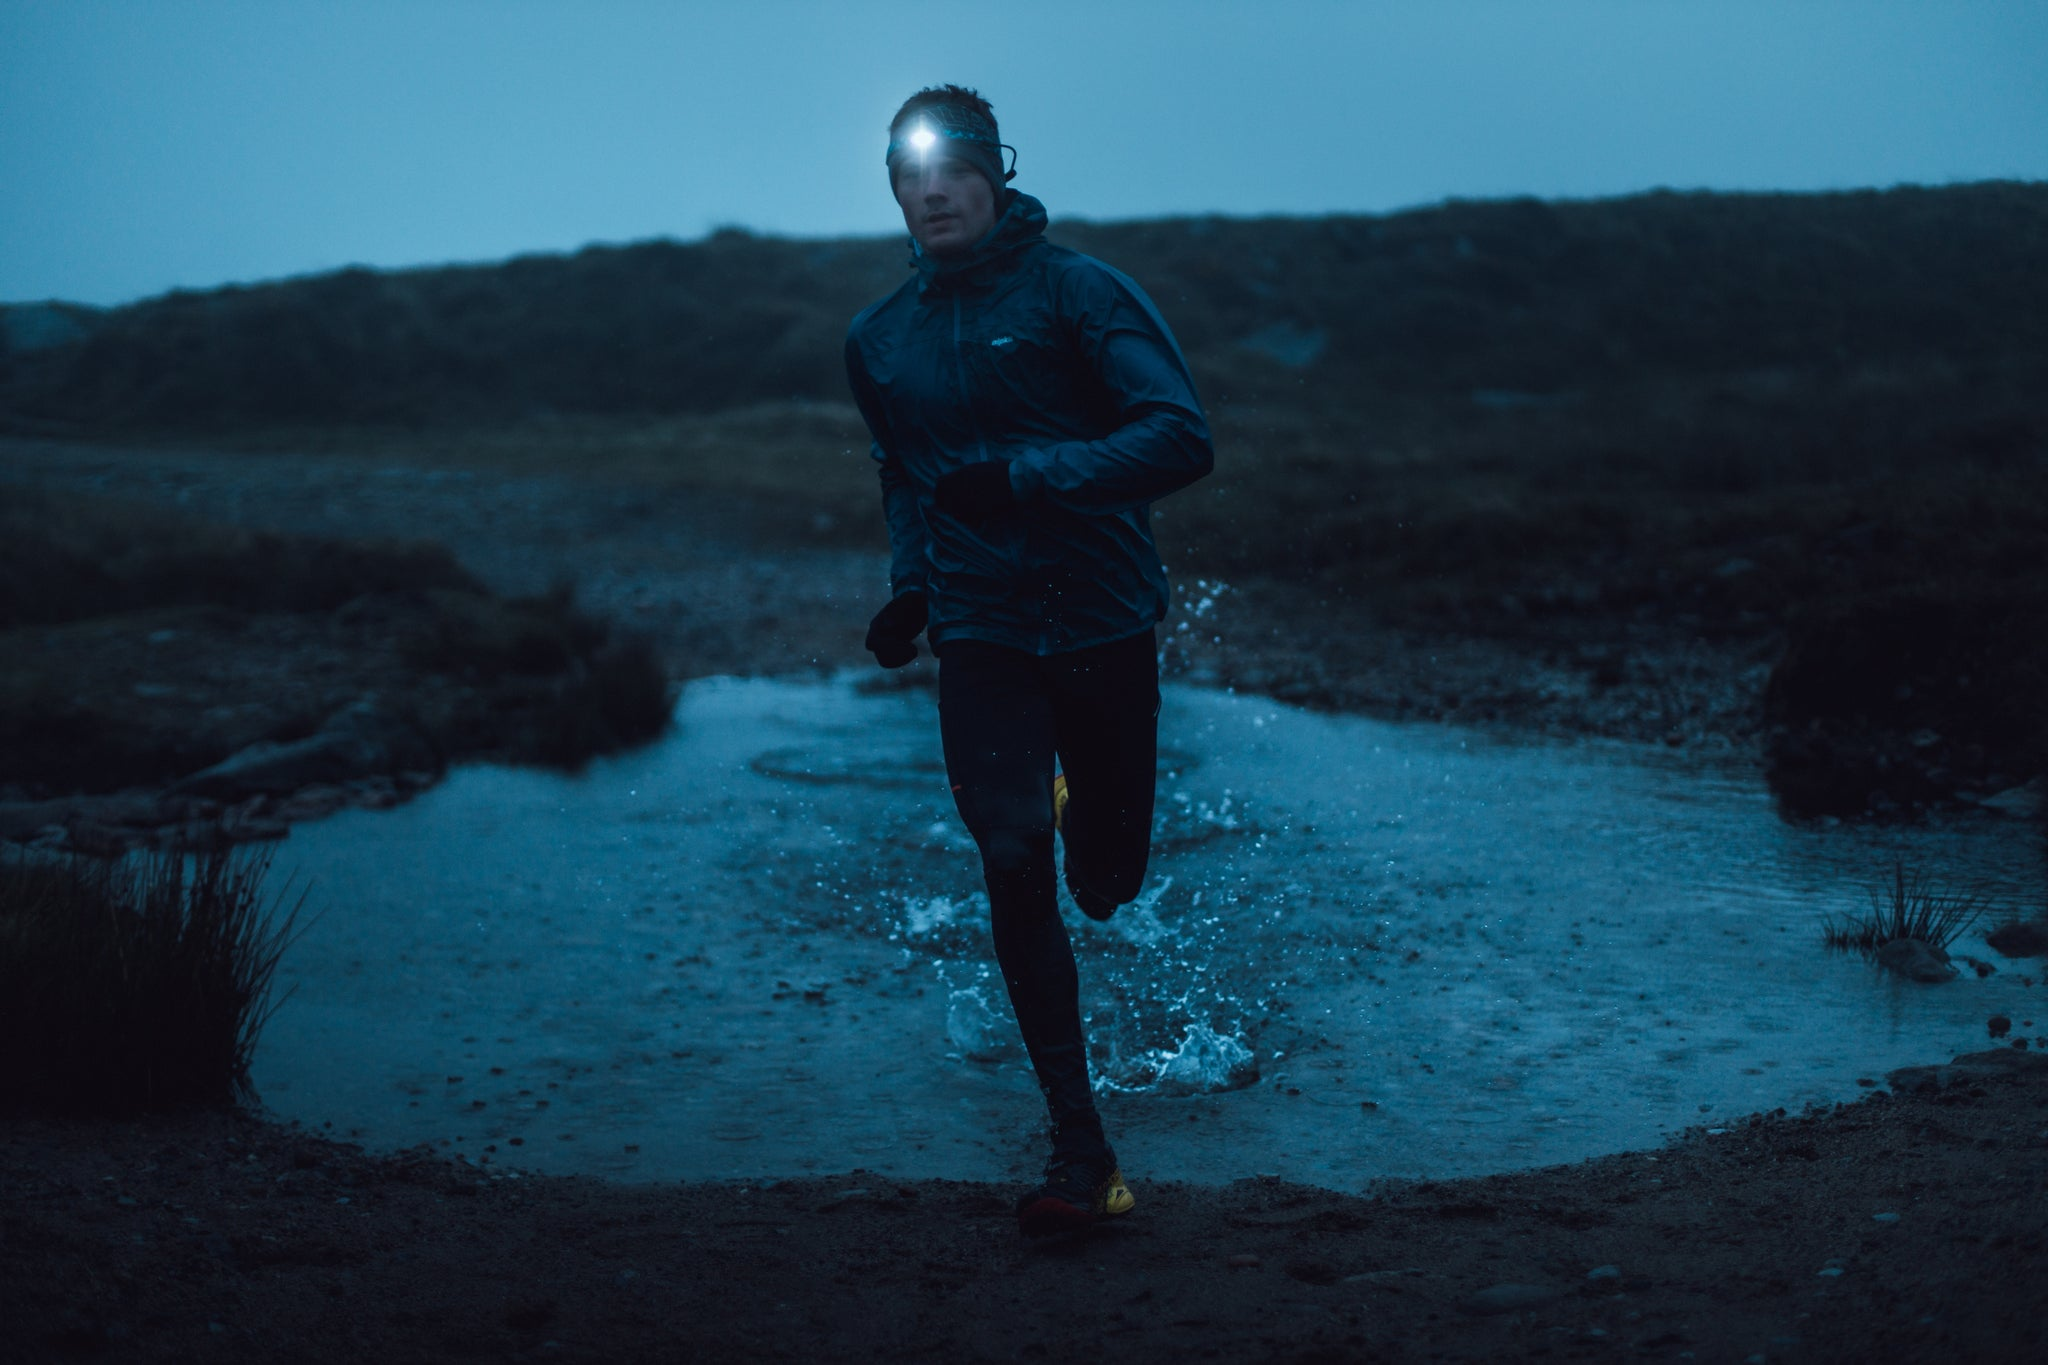 Trail running with a Gamma running head torch